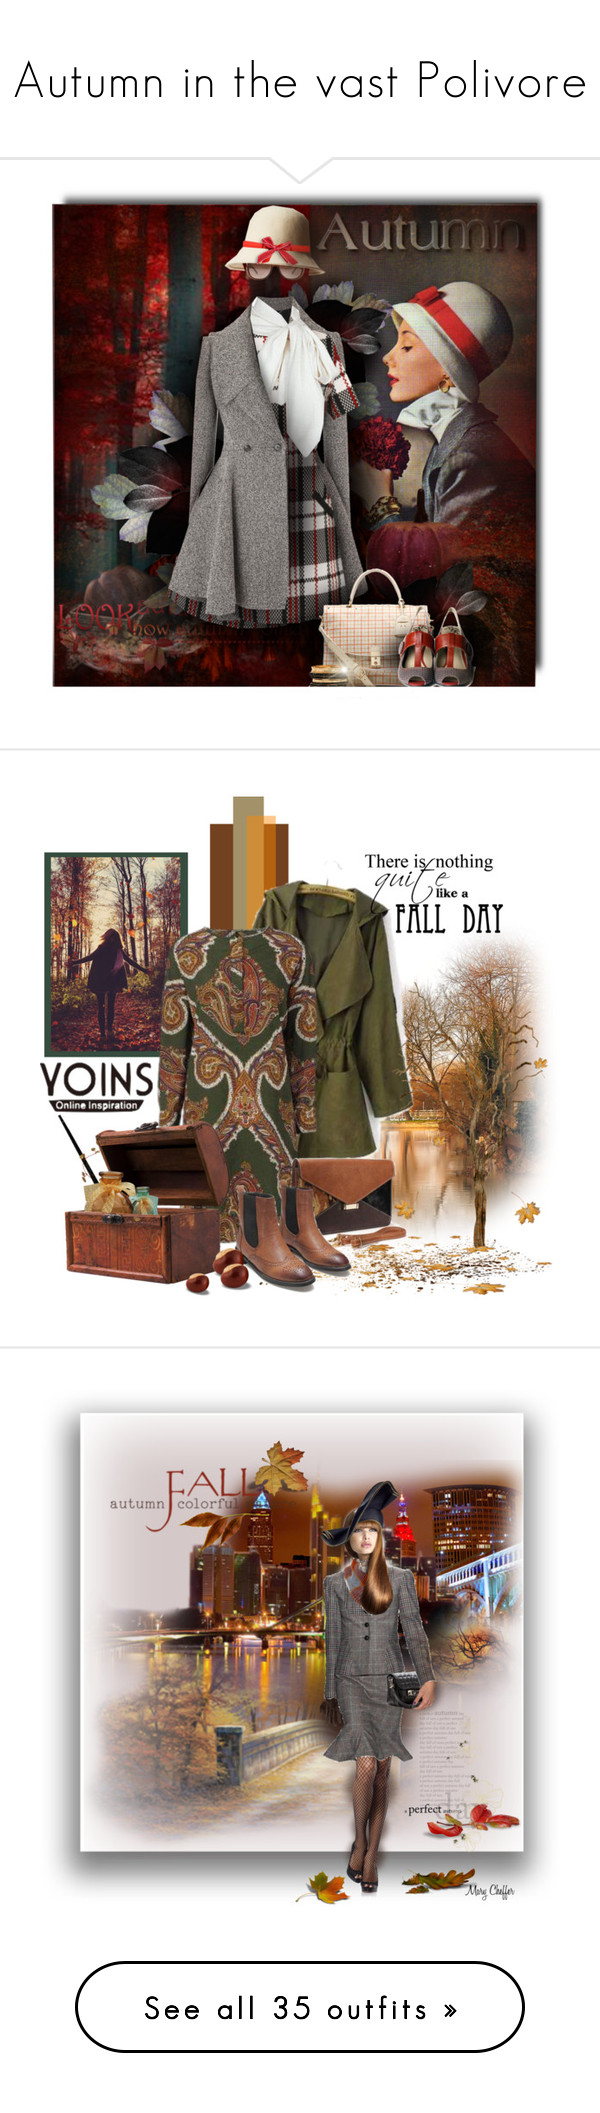 """""""Autumn in the vast Polivore"""" by look-comskaya ❤ liked on Polyvore featuring Lost & Found, Girls On Film, Alexander McQueen, Gucci, Kate Spade, Ralph Lauren, Tory Burch, Pink Studio, tartan and GE"""